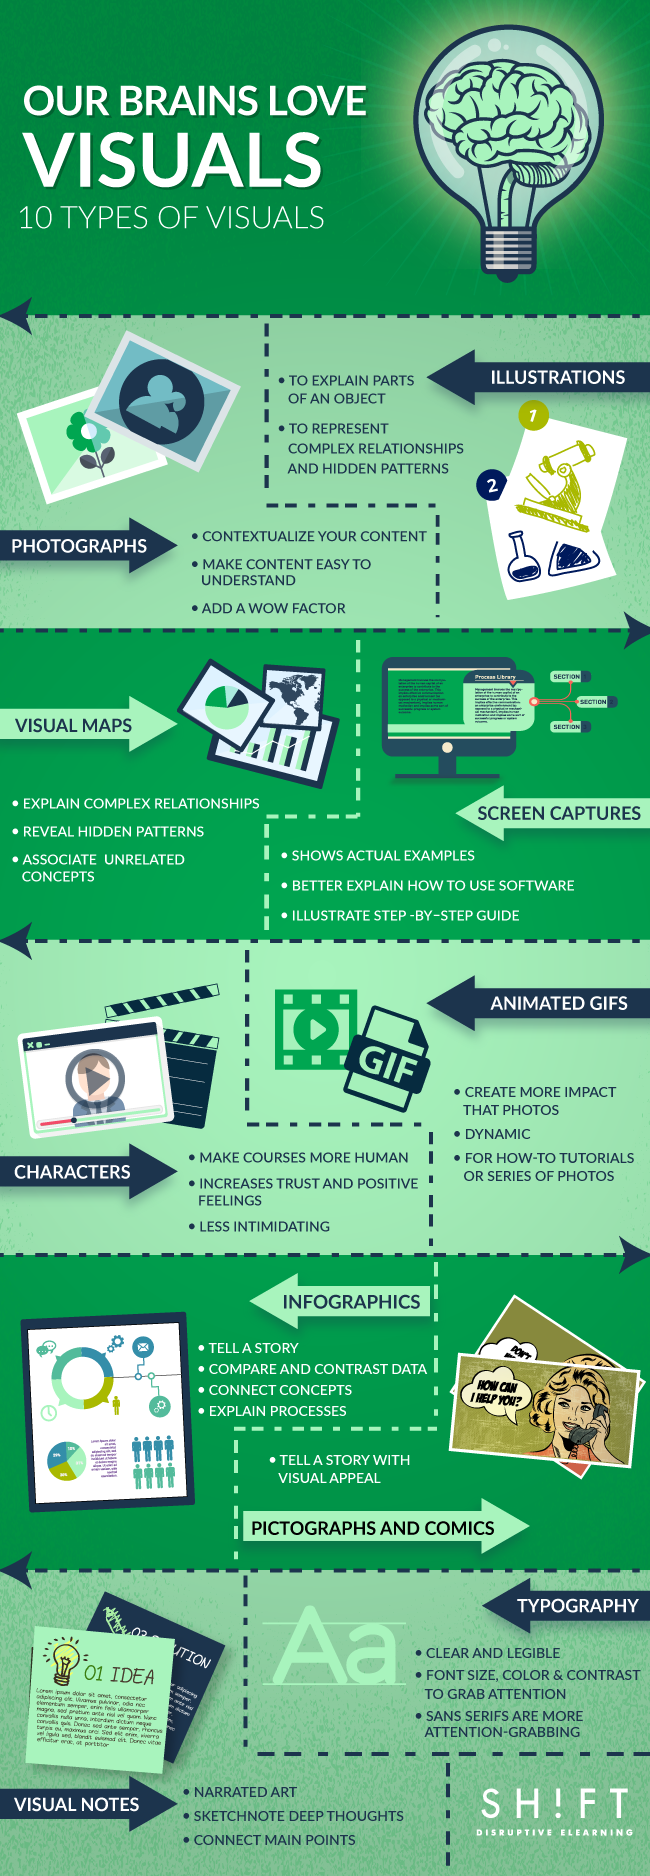 10 Types of Visual Content to Improve Learner Engagement